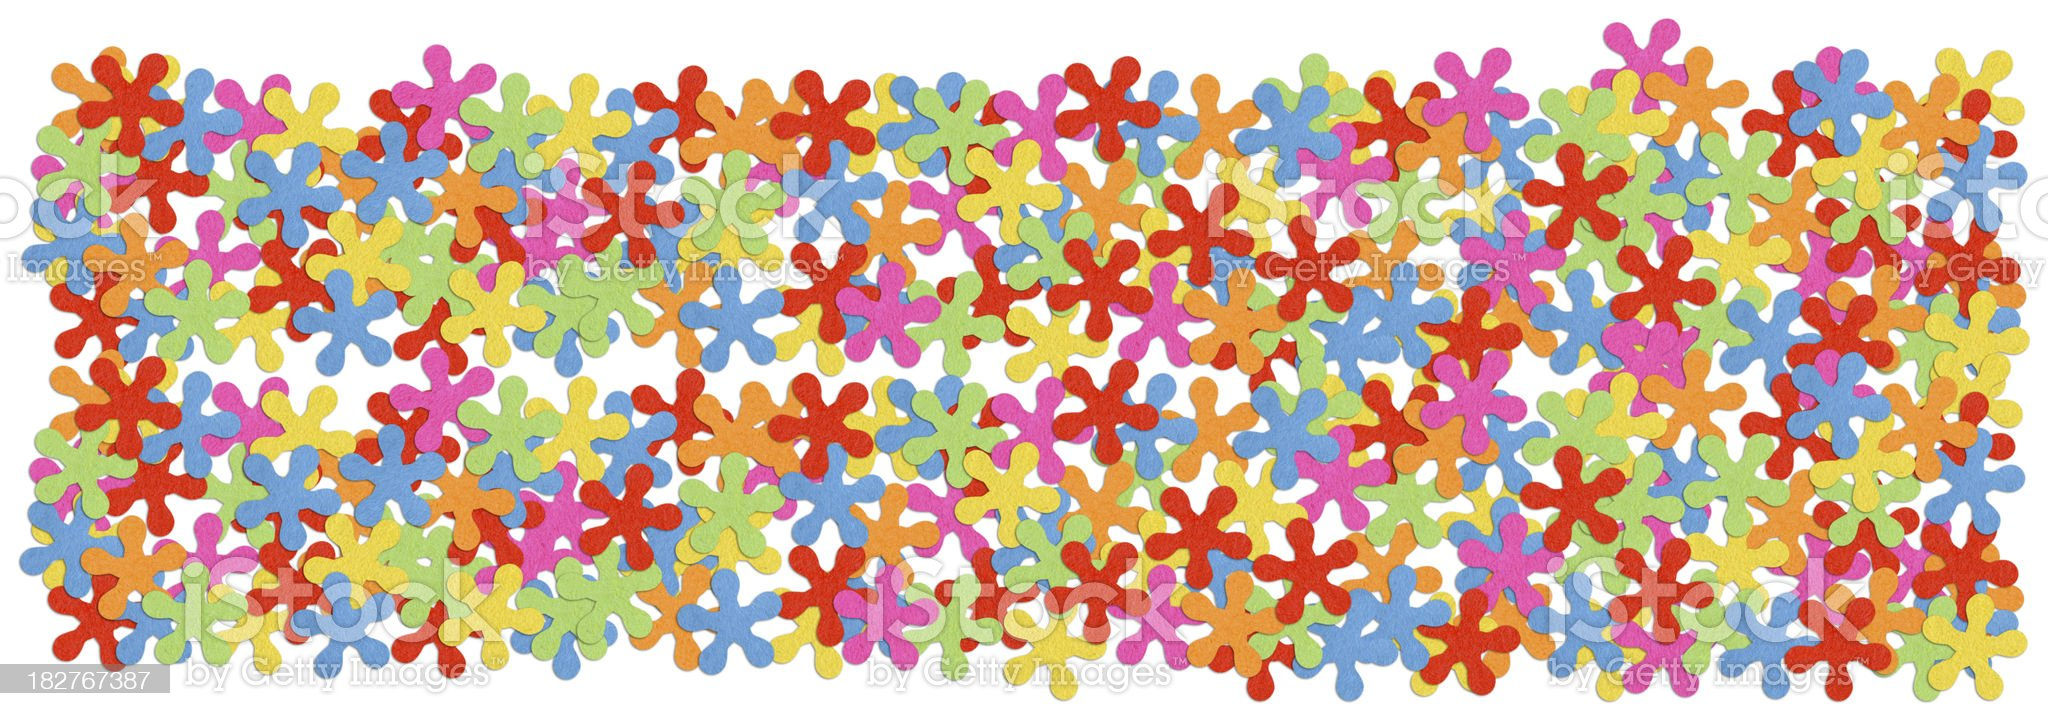 Confetti background royalty-free stock photo